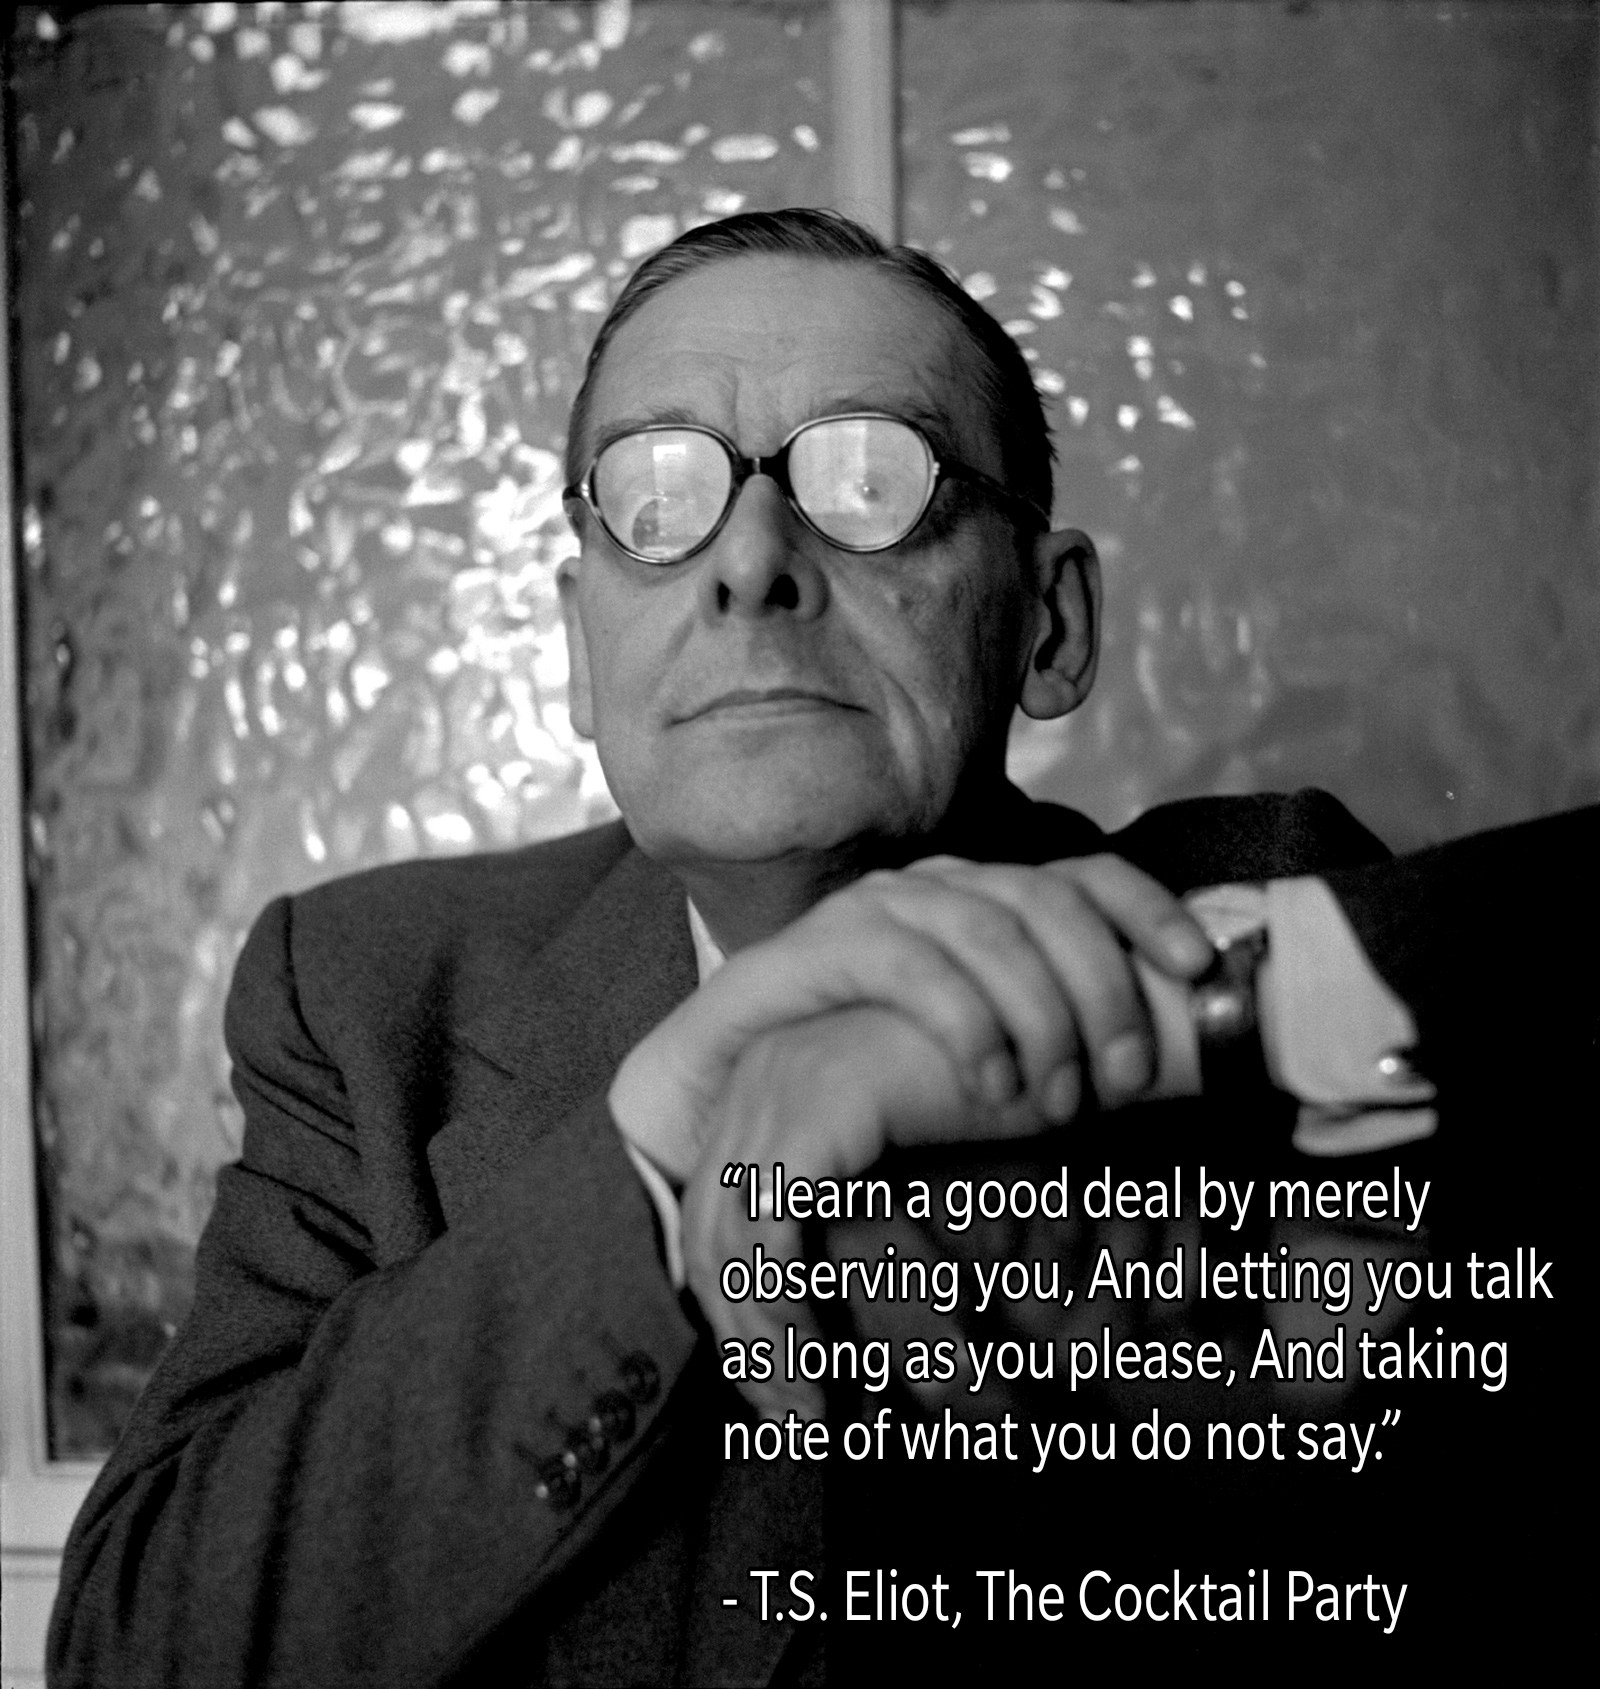 """I learn a good deal by merely observing you, And letting you talk as long as you please, And taking note of what you do not say."" – T.S. Eliot, The Cocktail Party [1600 x 1689]"